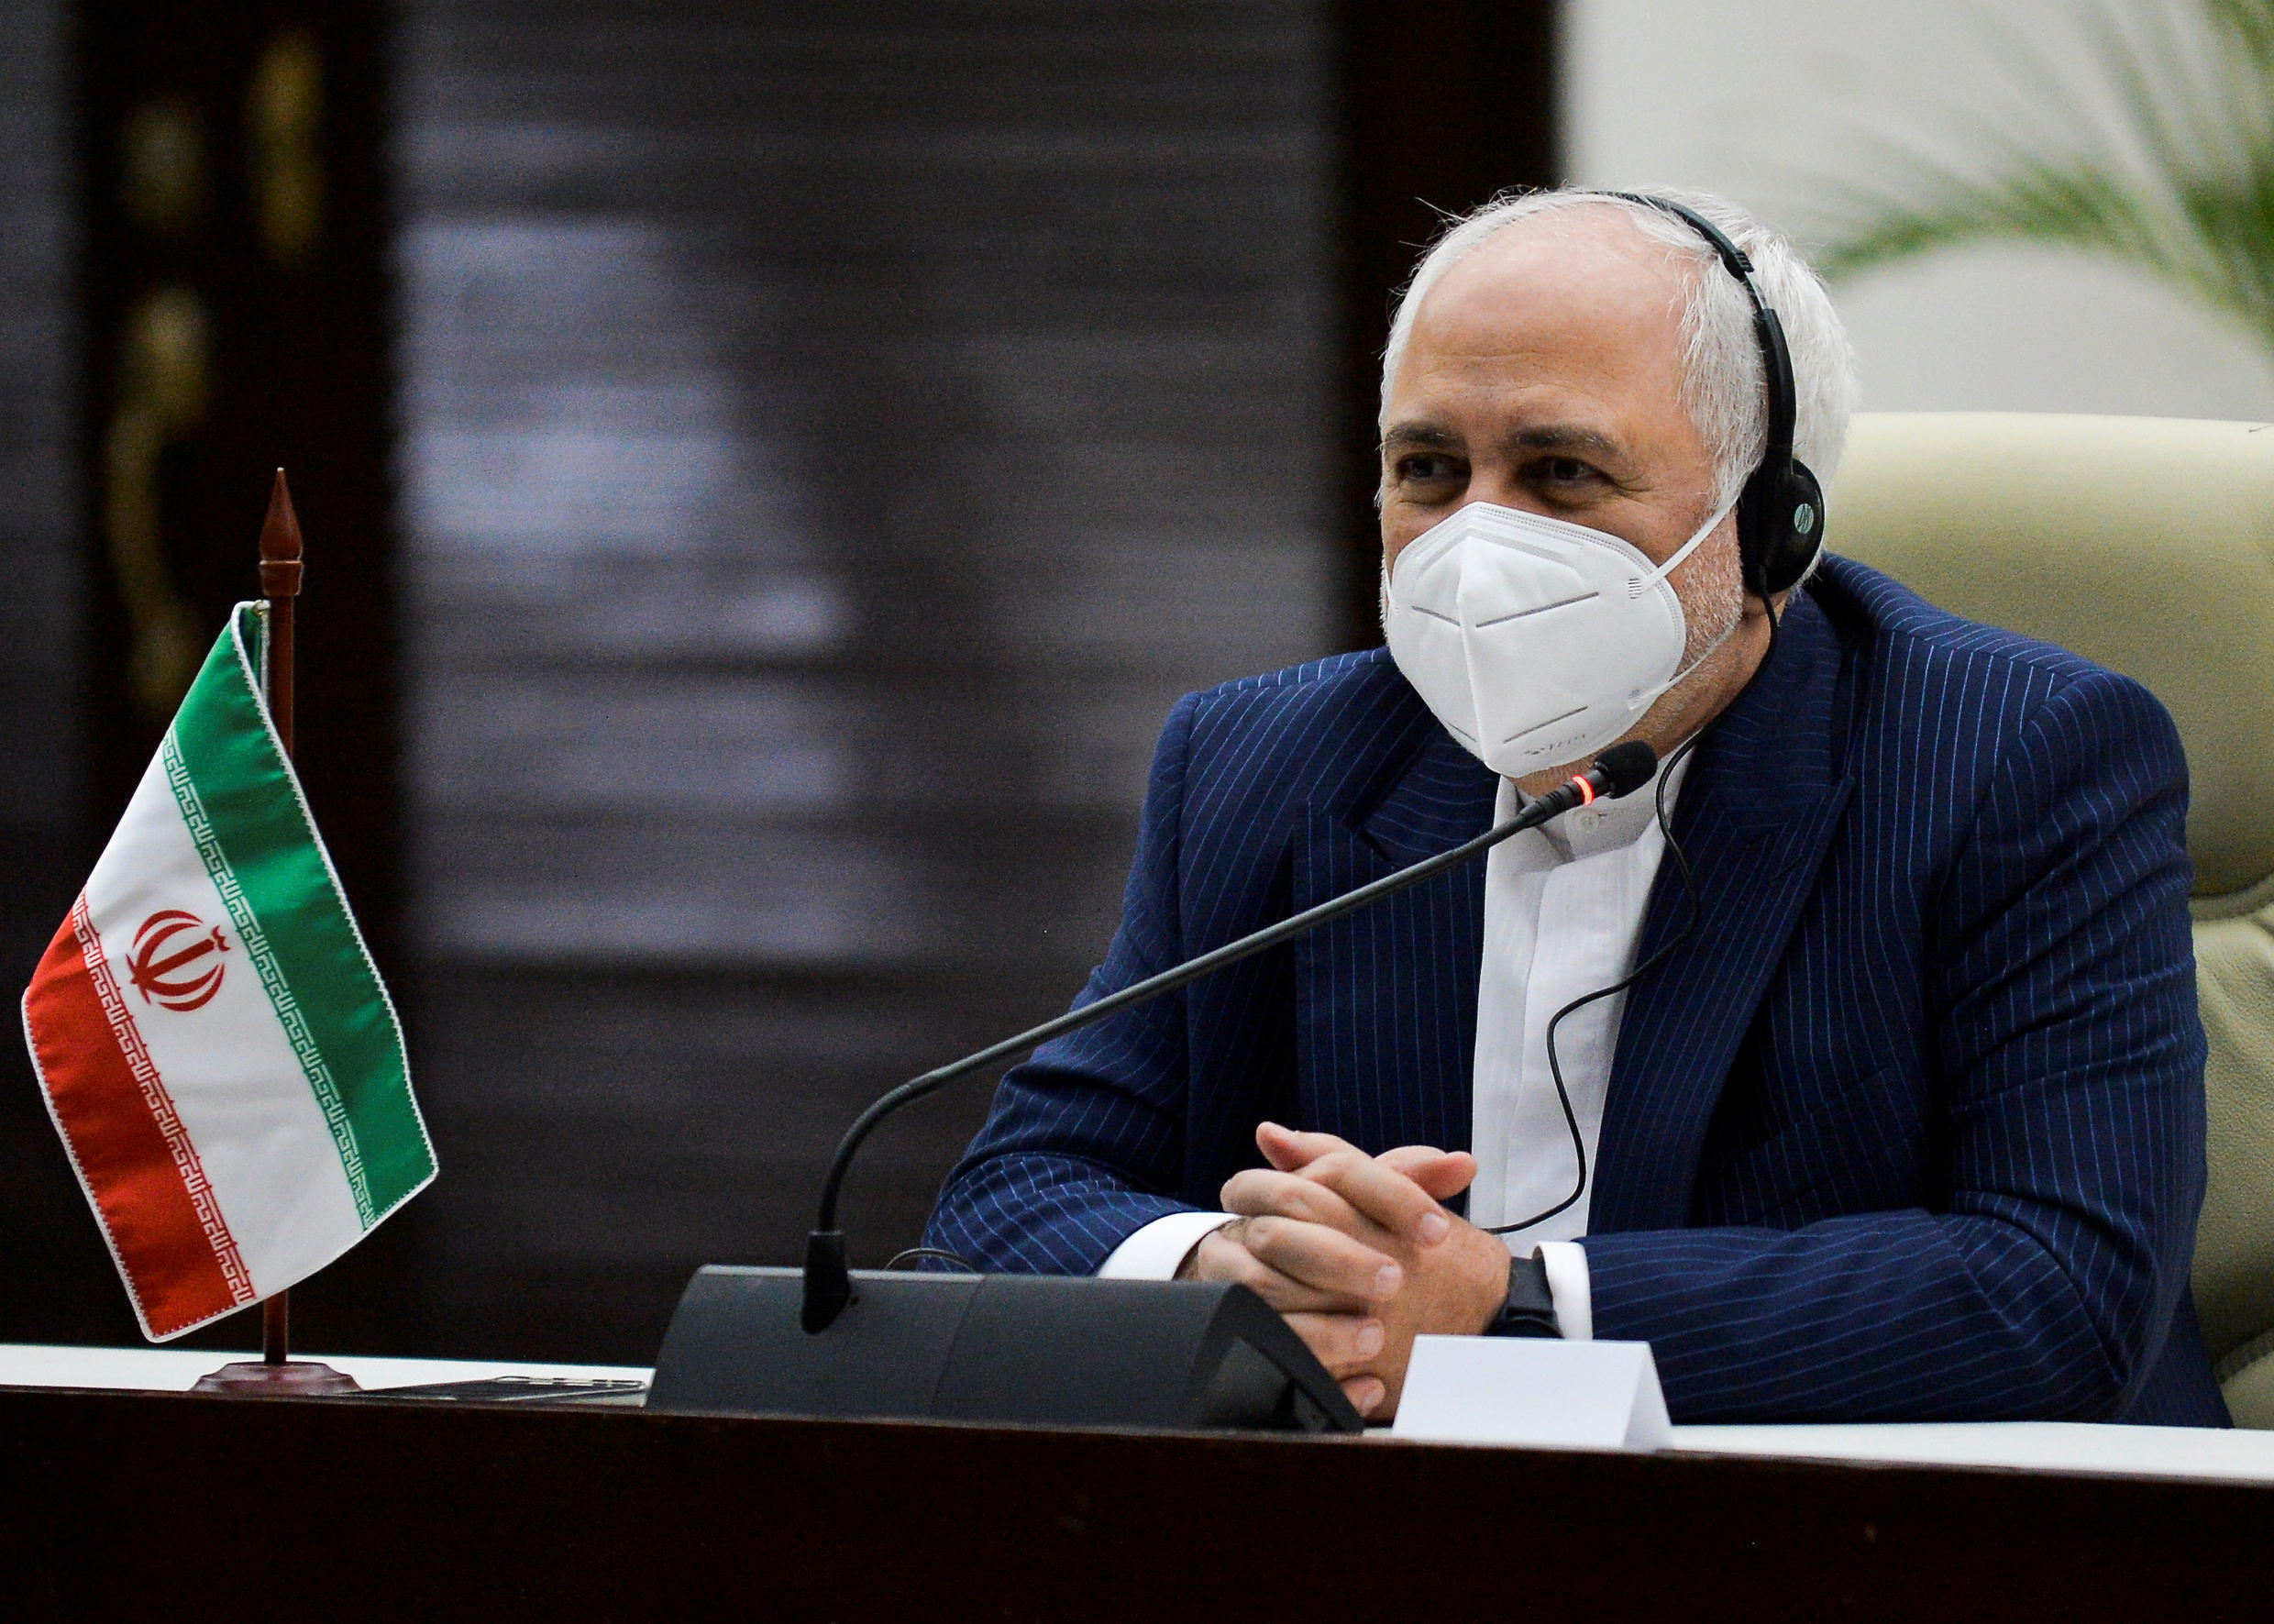 Iranian Foreign Minister Mohammad Javad Zarif published an op-ed on what it would take to save the Iran nuclear deal days after the inauguration of US President Joe Biden